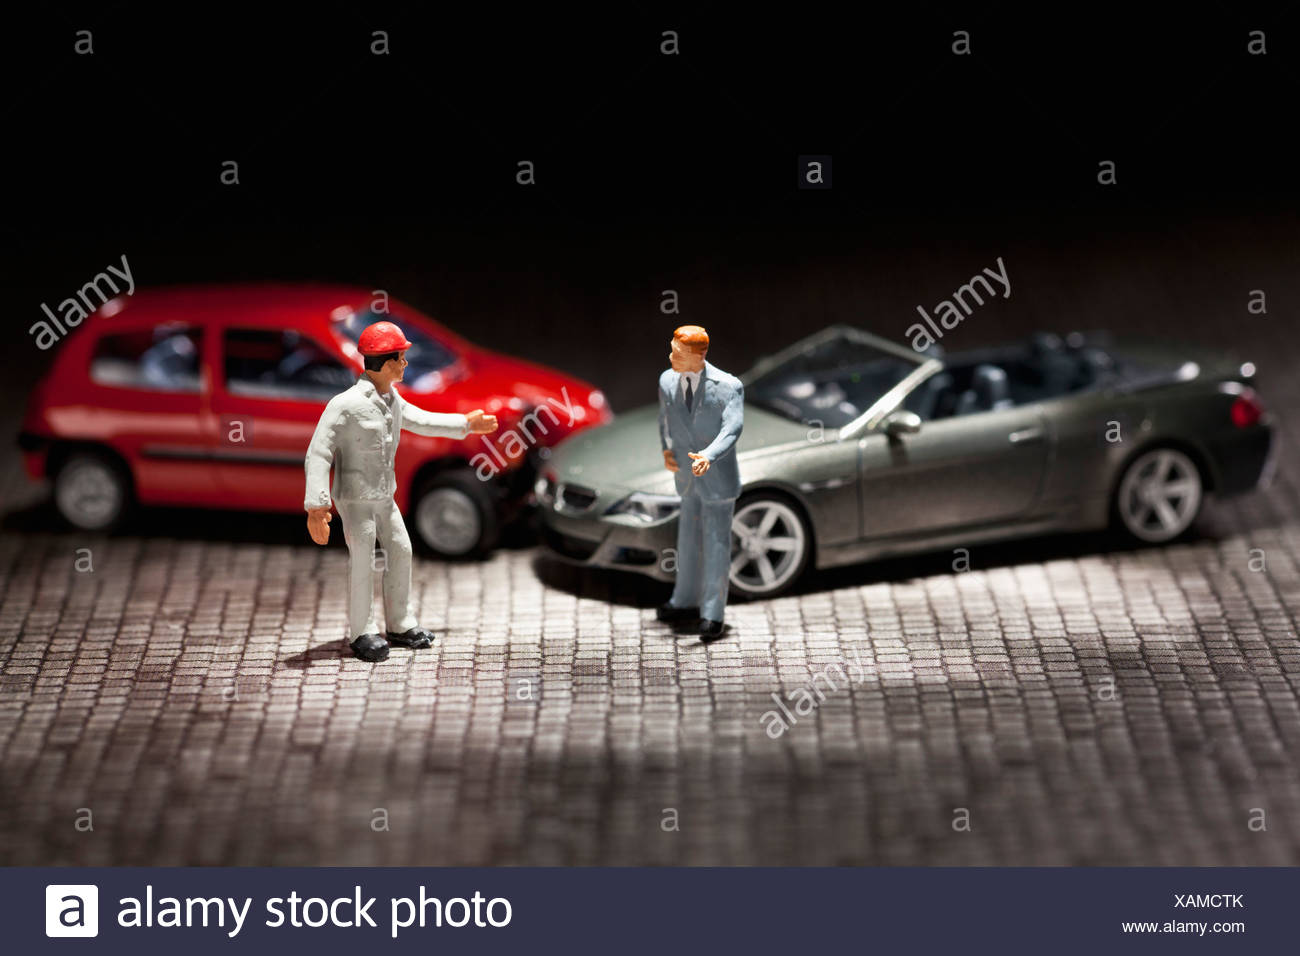 Two miniature figurine men arguing over their miniature crashed cars - Stock Image